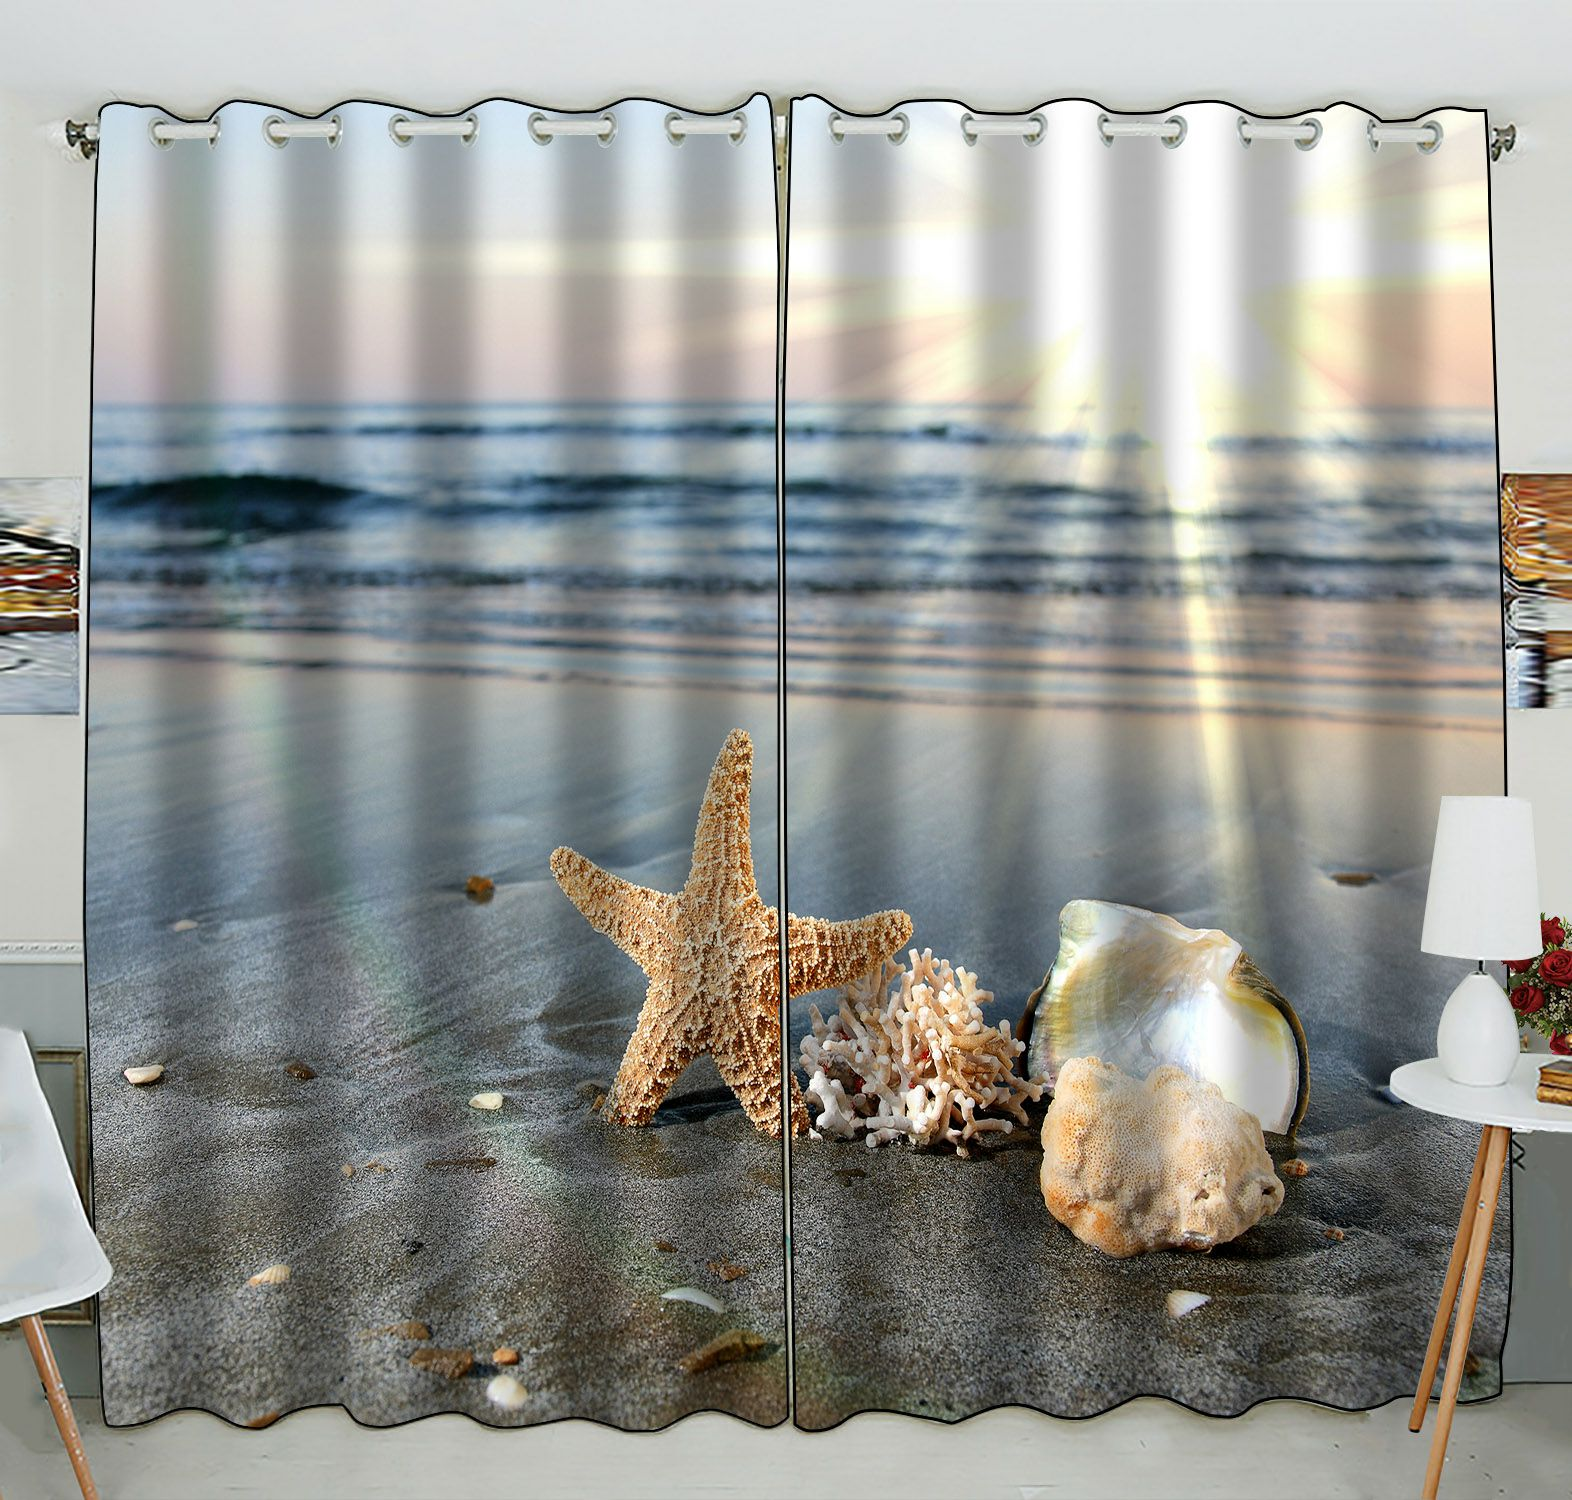 ZKGK Starfish Sea Ocean Waves Window Curtain Drapery/Panels/Treatment For Living Room Bedroom Kids Rooms 52x84 inches Two Panel